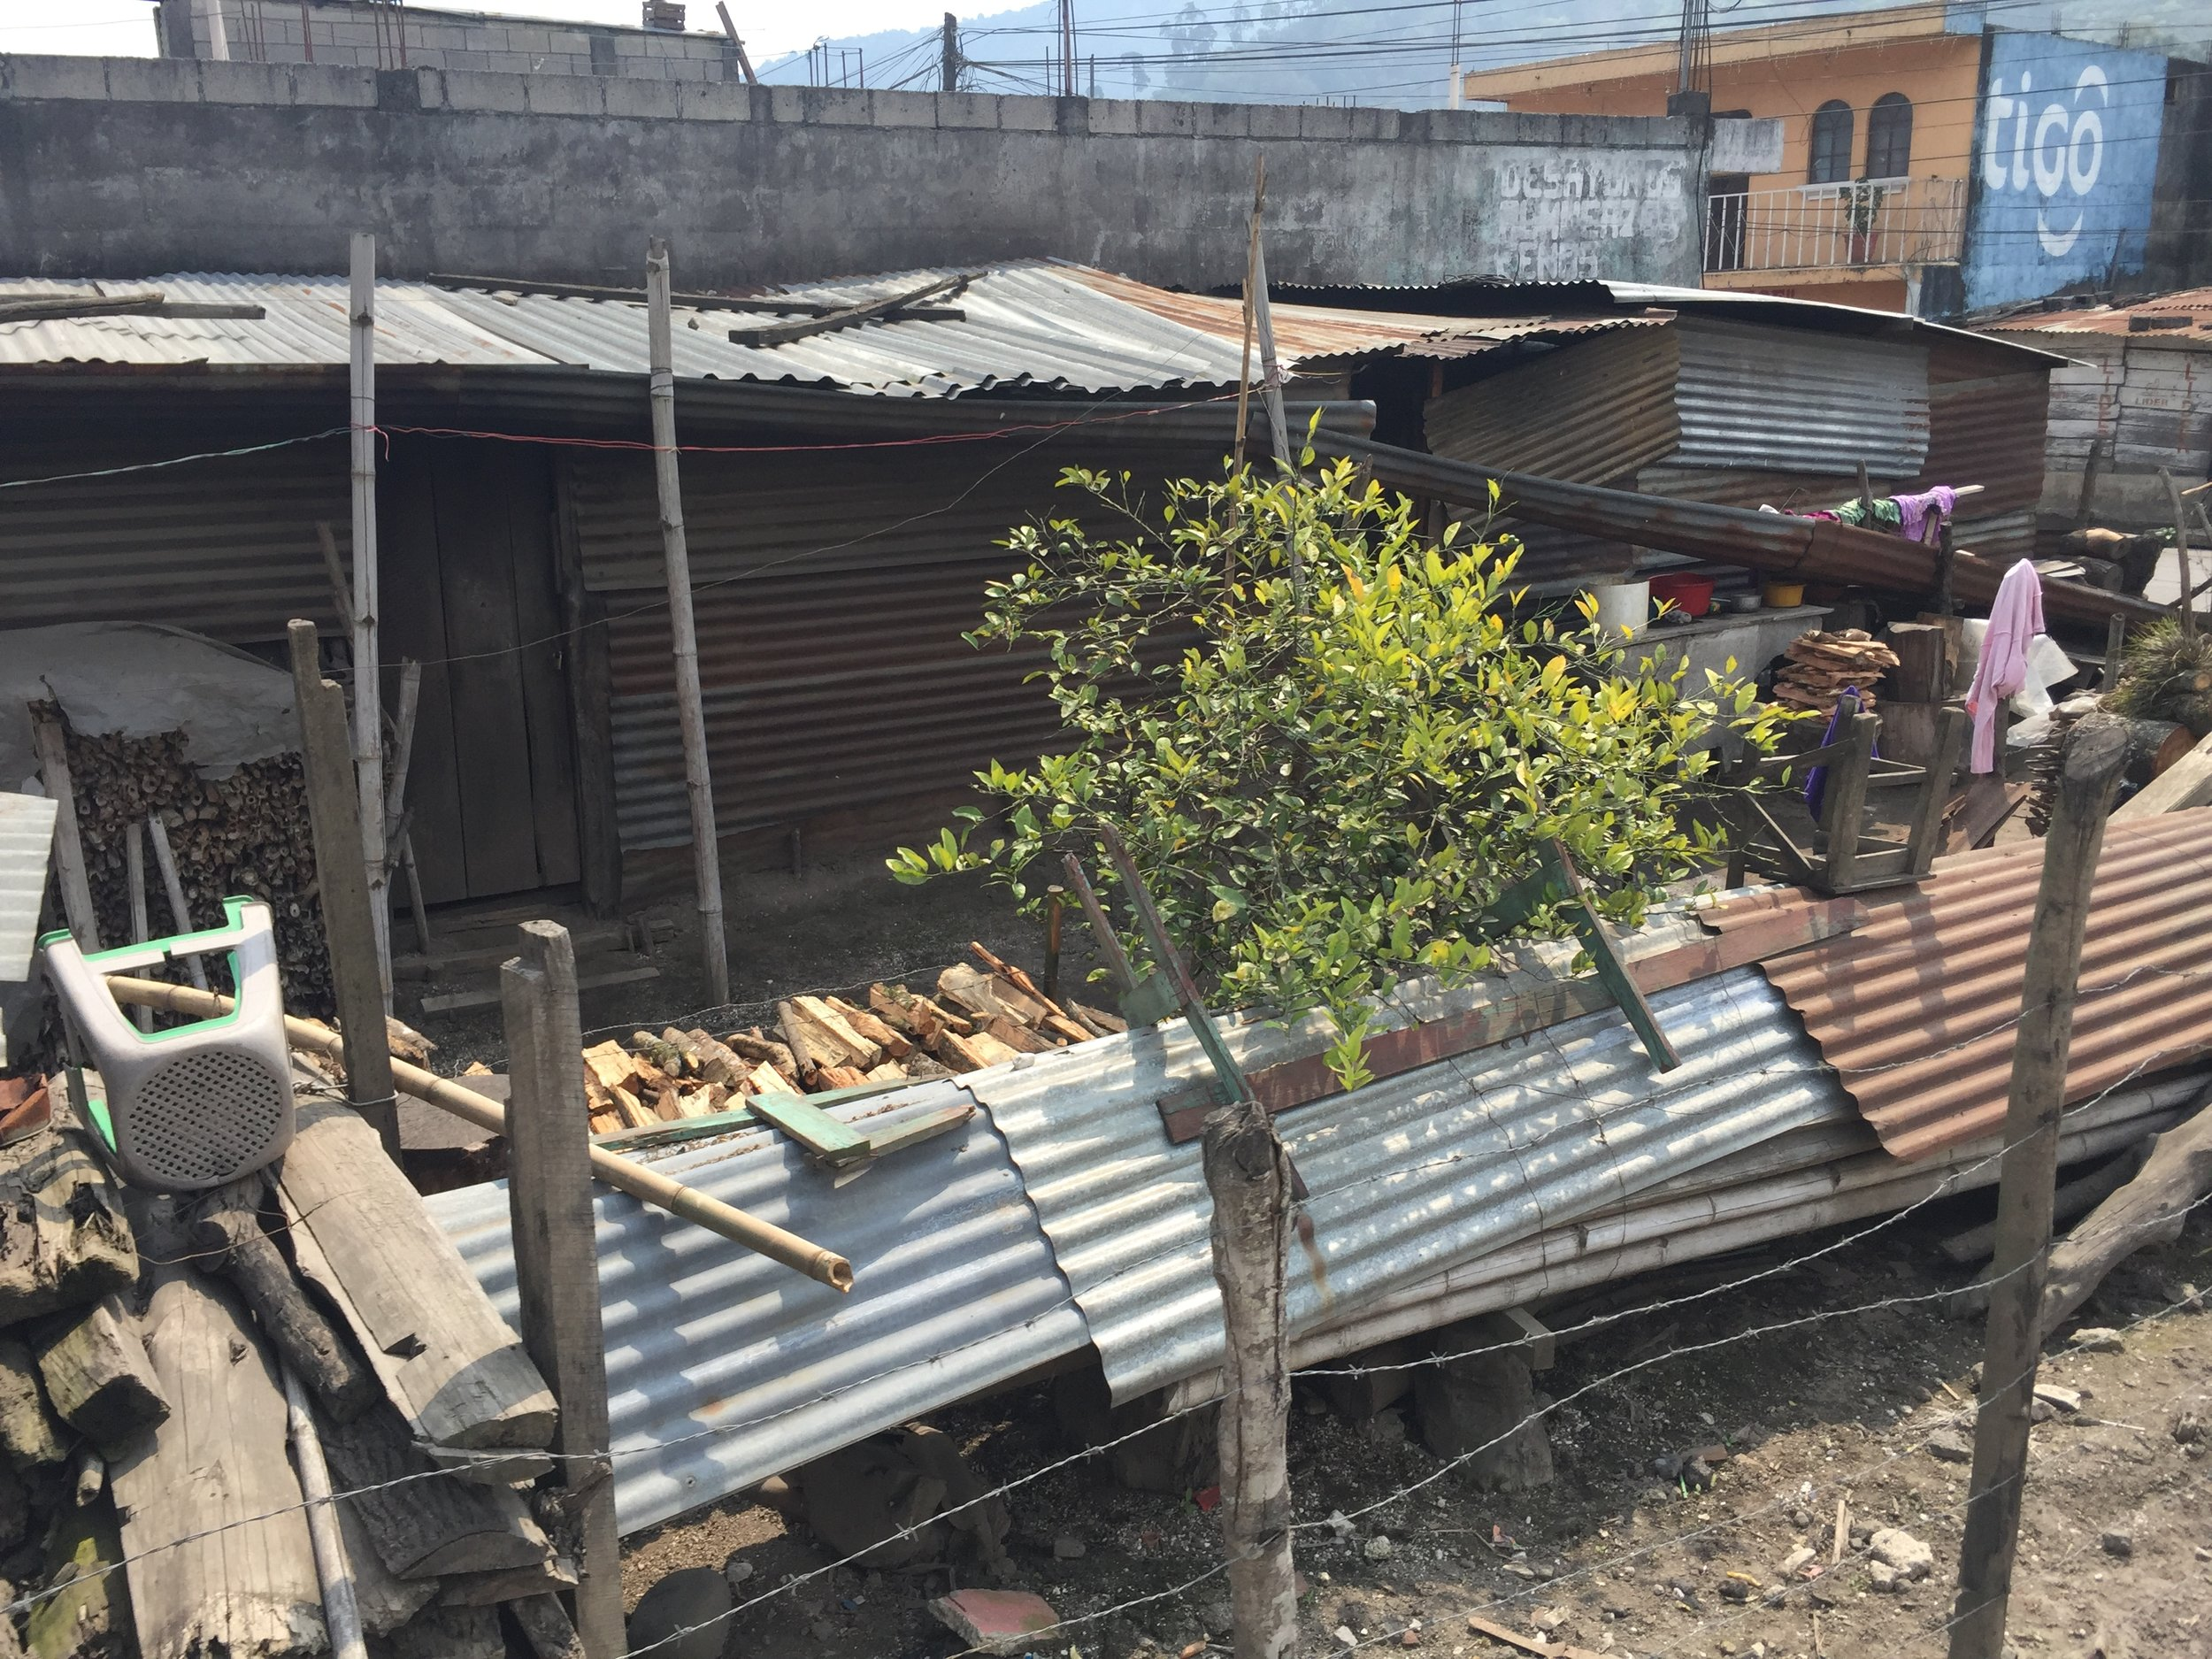 Wood stacks for cooking are a mainstay of most Guatemalan front yards.